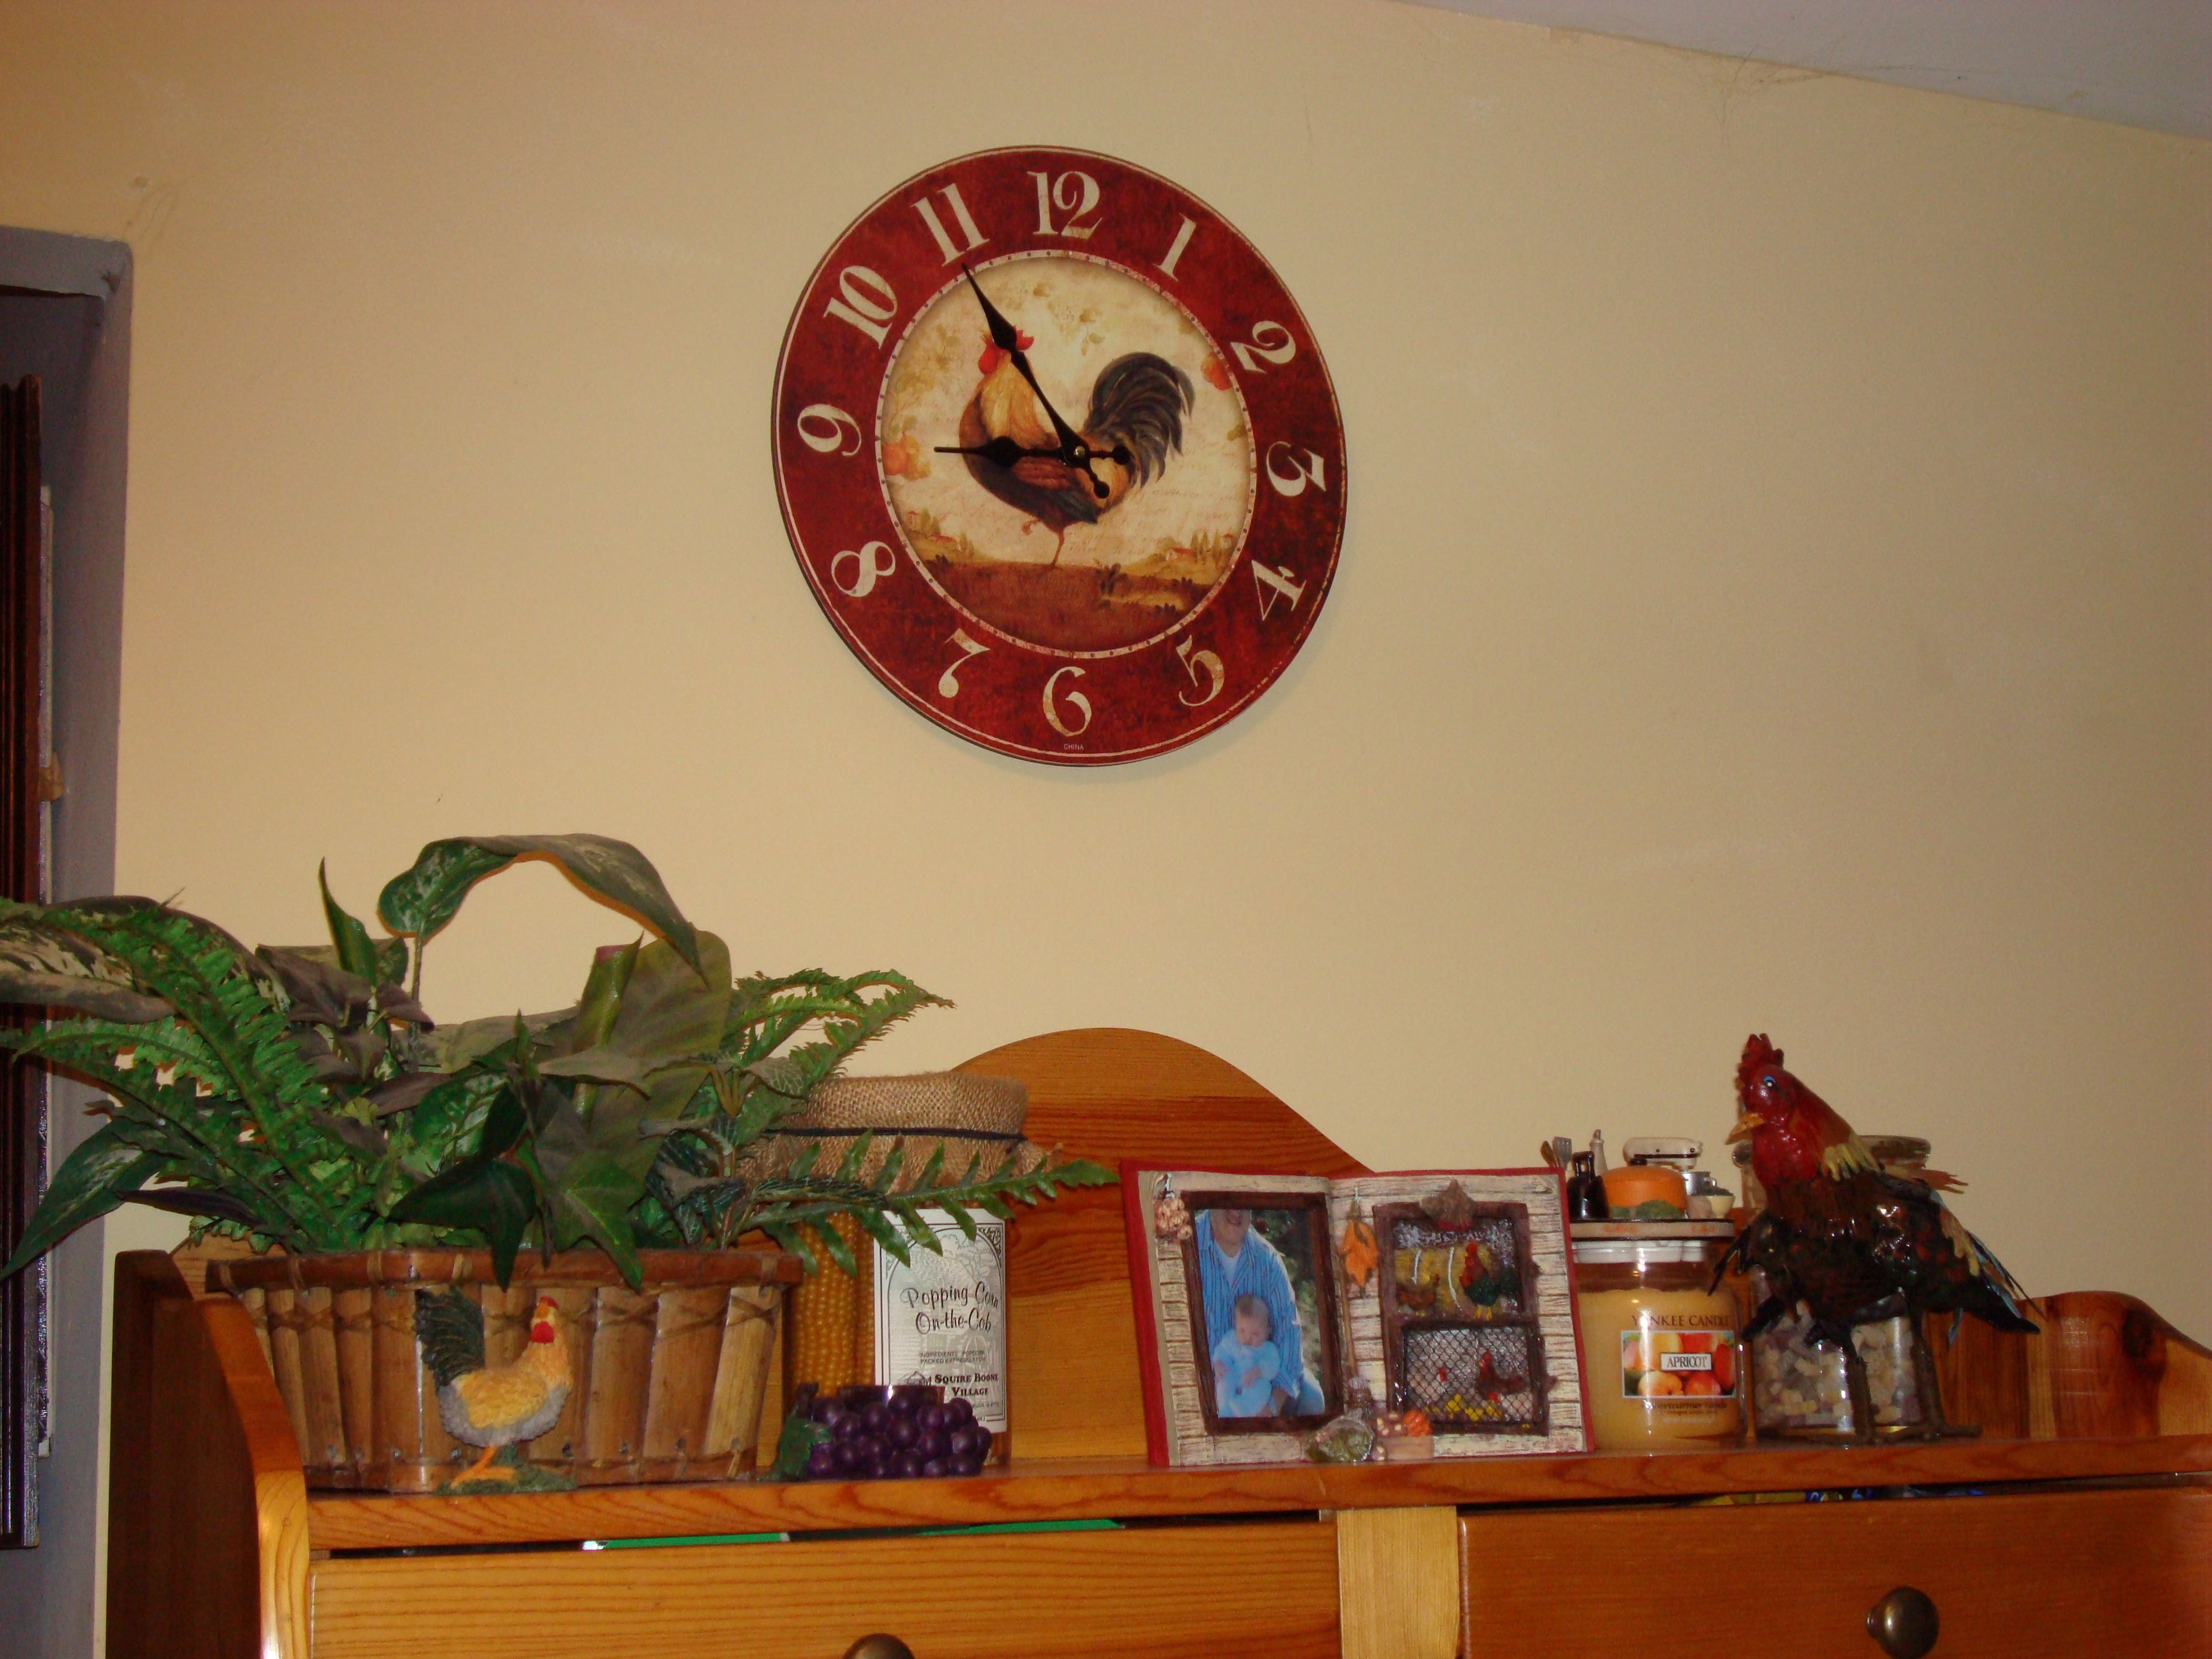 My kitchen clock and other rooster things.